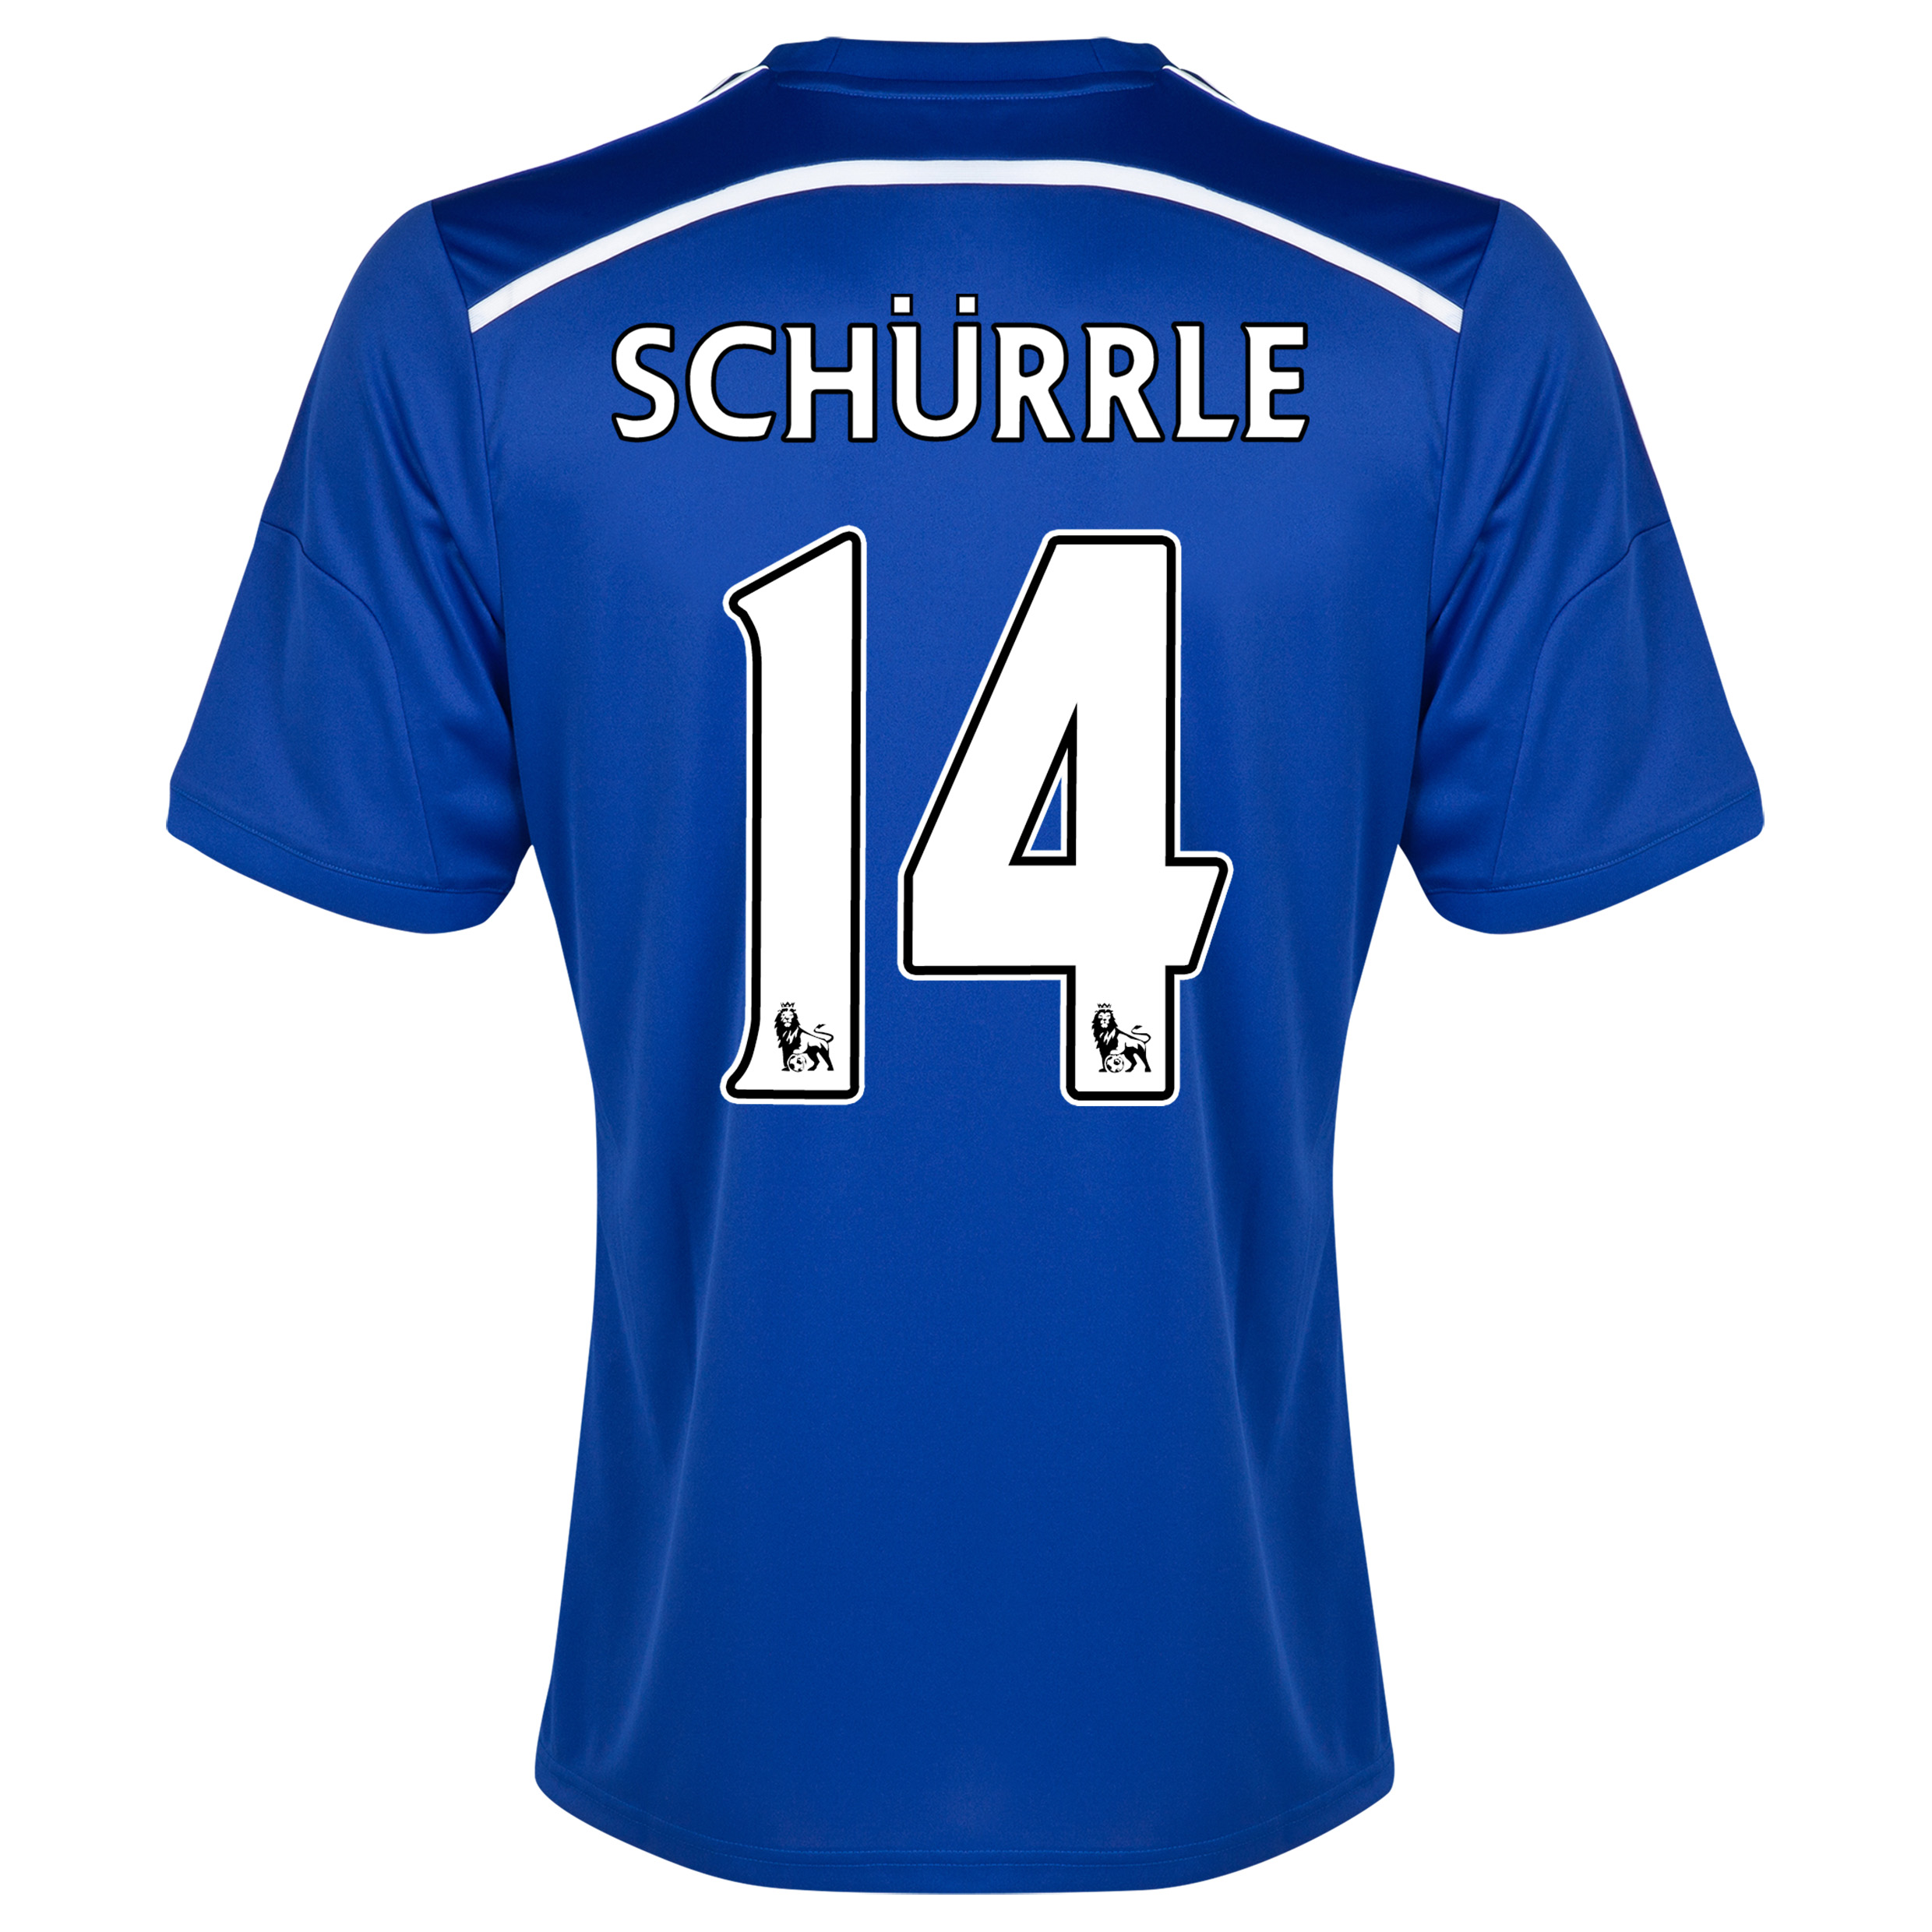 with Schurrle 14 printing